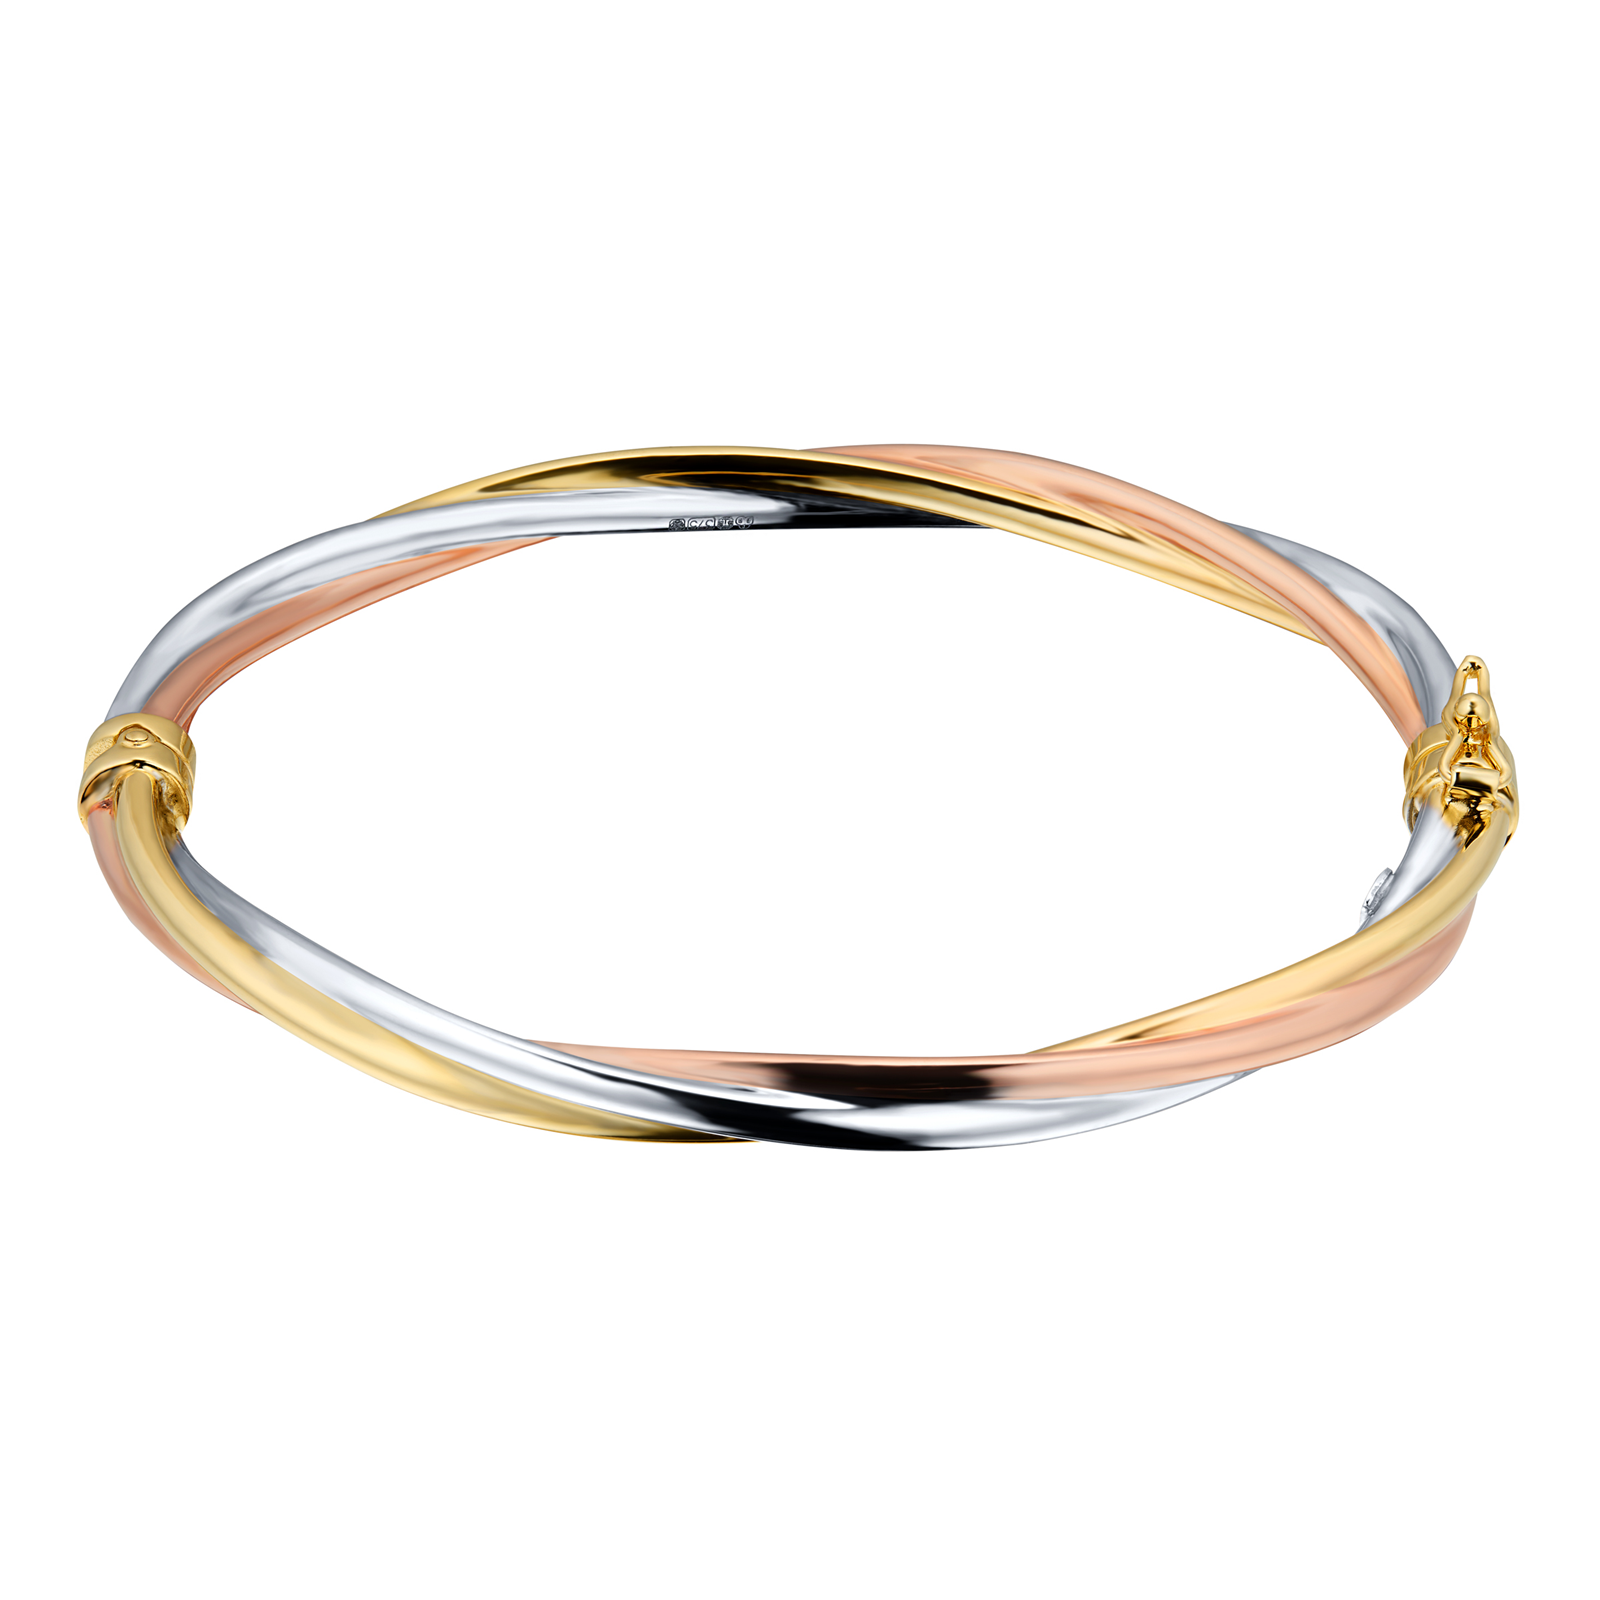 virani bangles bangle in textured w diamond beads gold yellow jewelers gm cut products